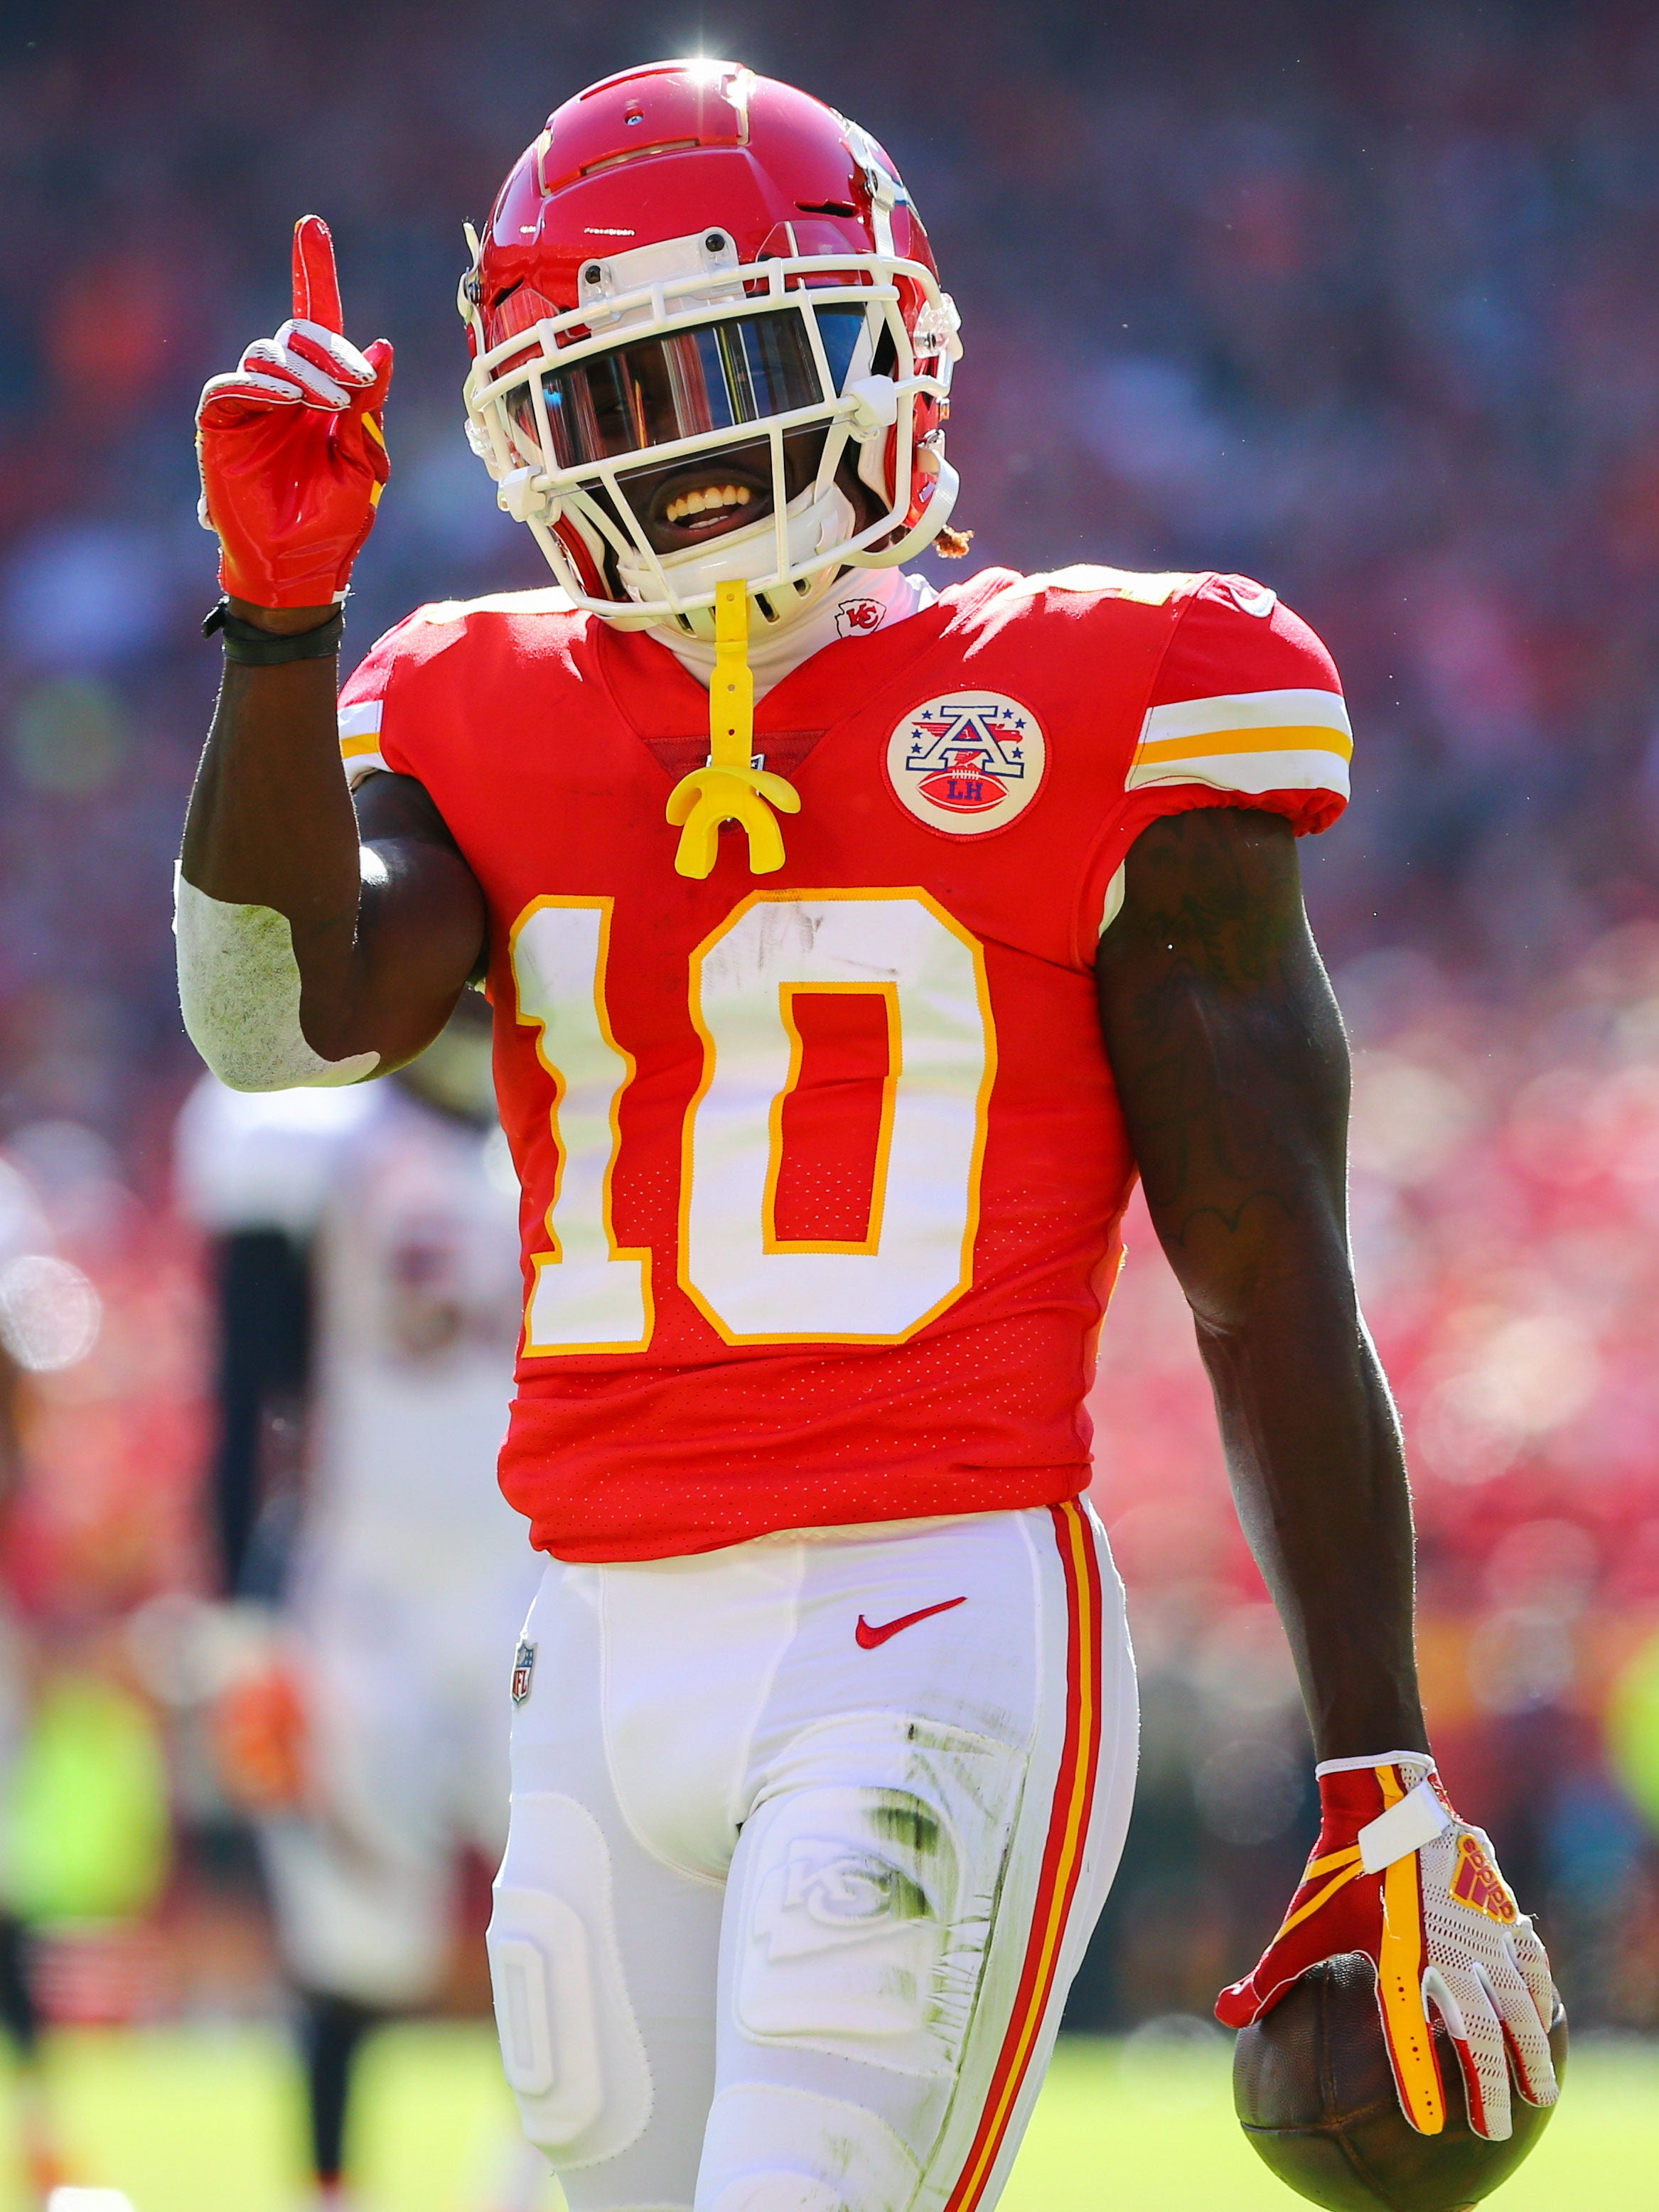 Kansas City Chiefs wide receiver Tyreek Hill (10) celebrates after a play against the Denver Broncos in the first half at Arrowhead Stadium.